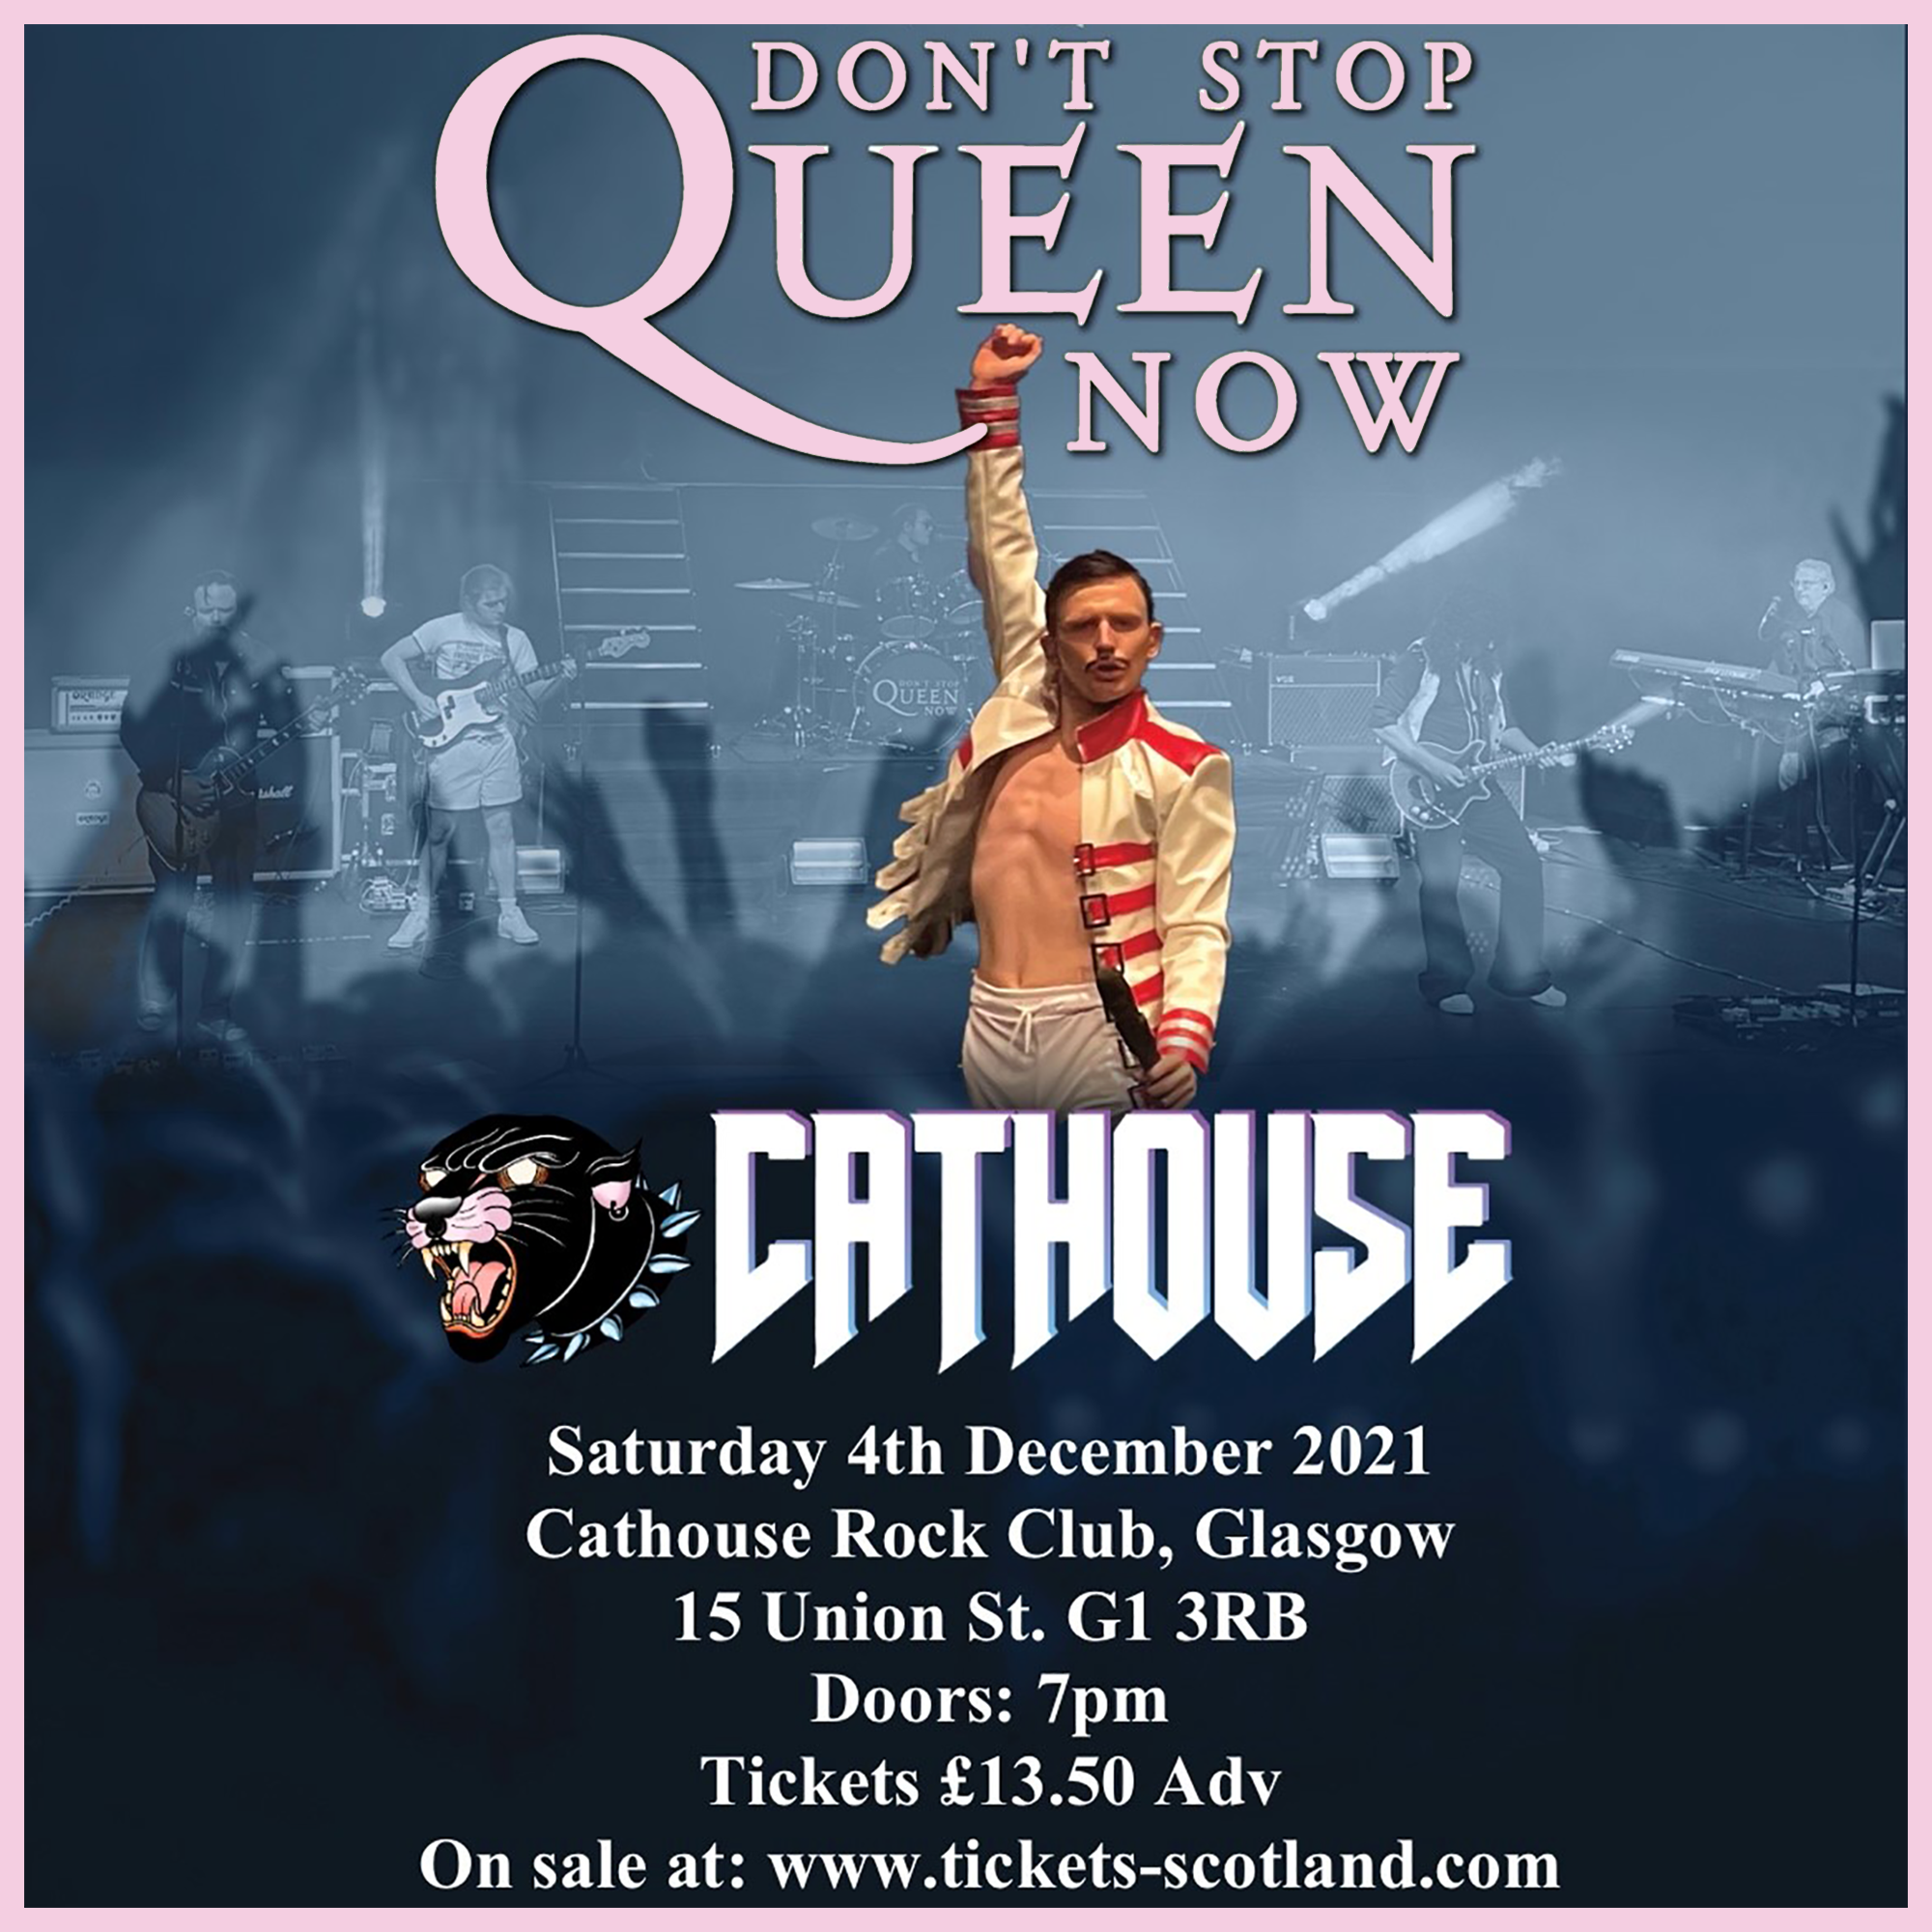 Graphic with text: Don't Stop Queen Now | Saturday 4th December 2021 | Cathouse Rock Club | 15 Union St, G1 3RB | Doors: 7pm | Tickets £13.50 Adv | On Sale At: www.tickets-scotland.com